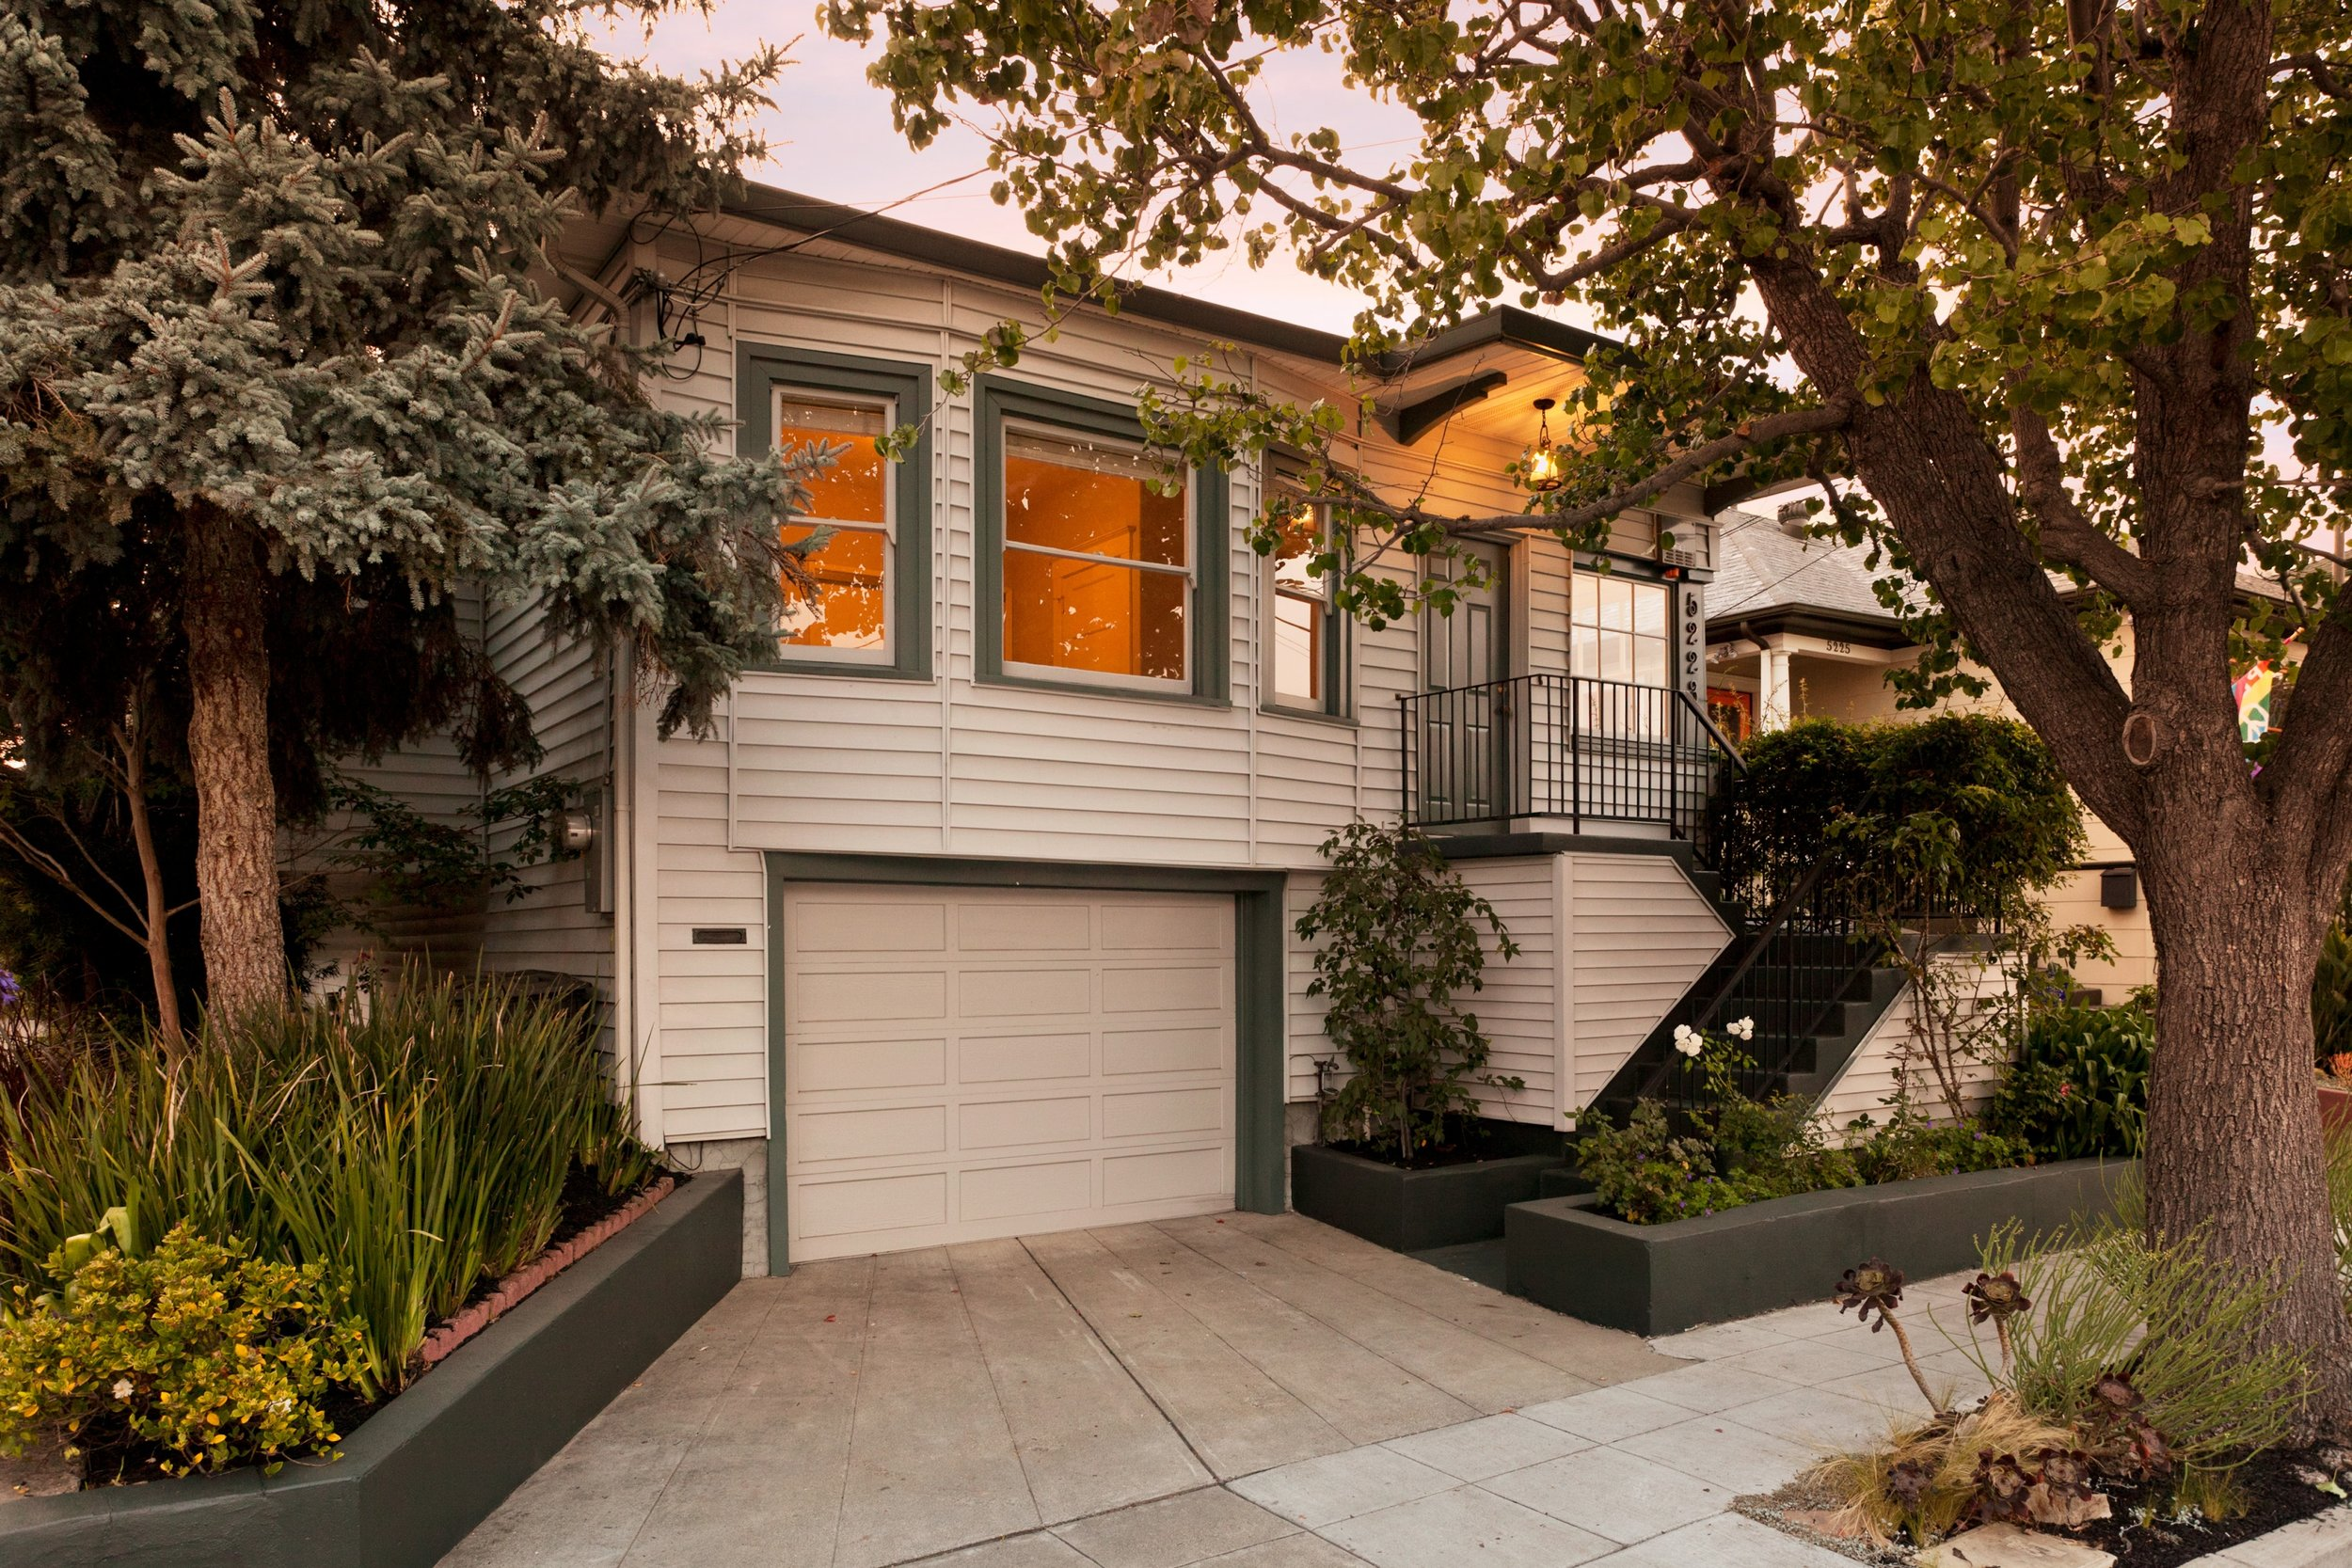 SOLD | 5223 BOYD AVENUE, OAKLAND $1,645,000